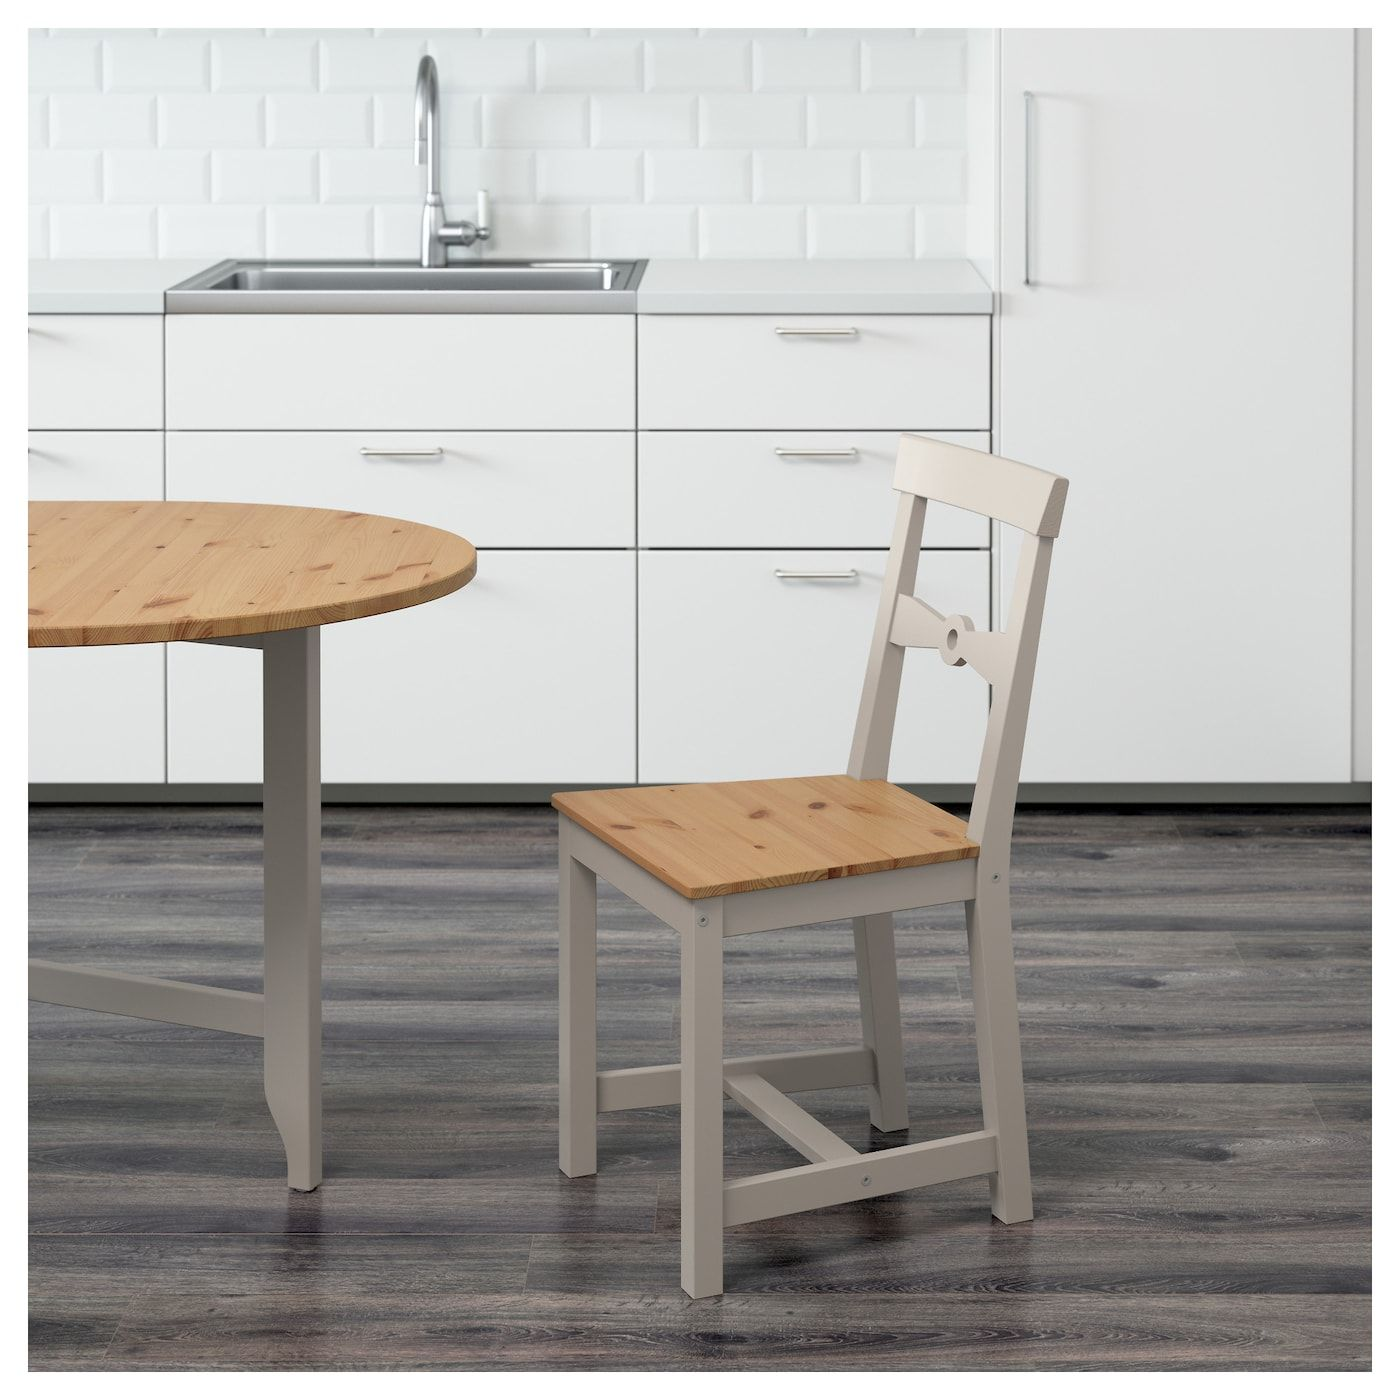 IKEA GAMLEBY Light Antique Stain, Gray Chair in 2020